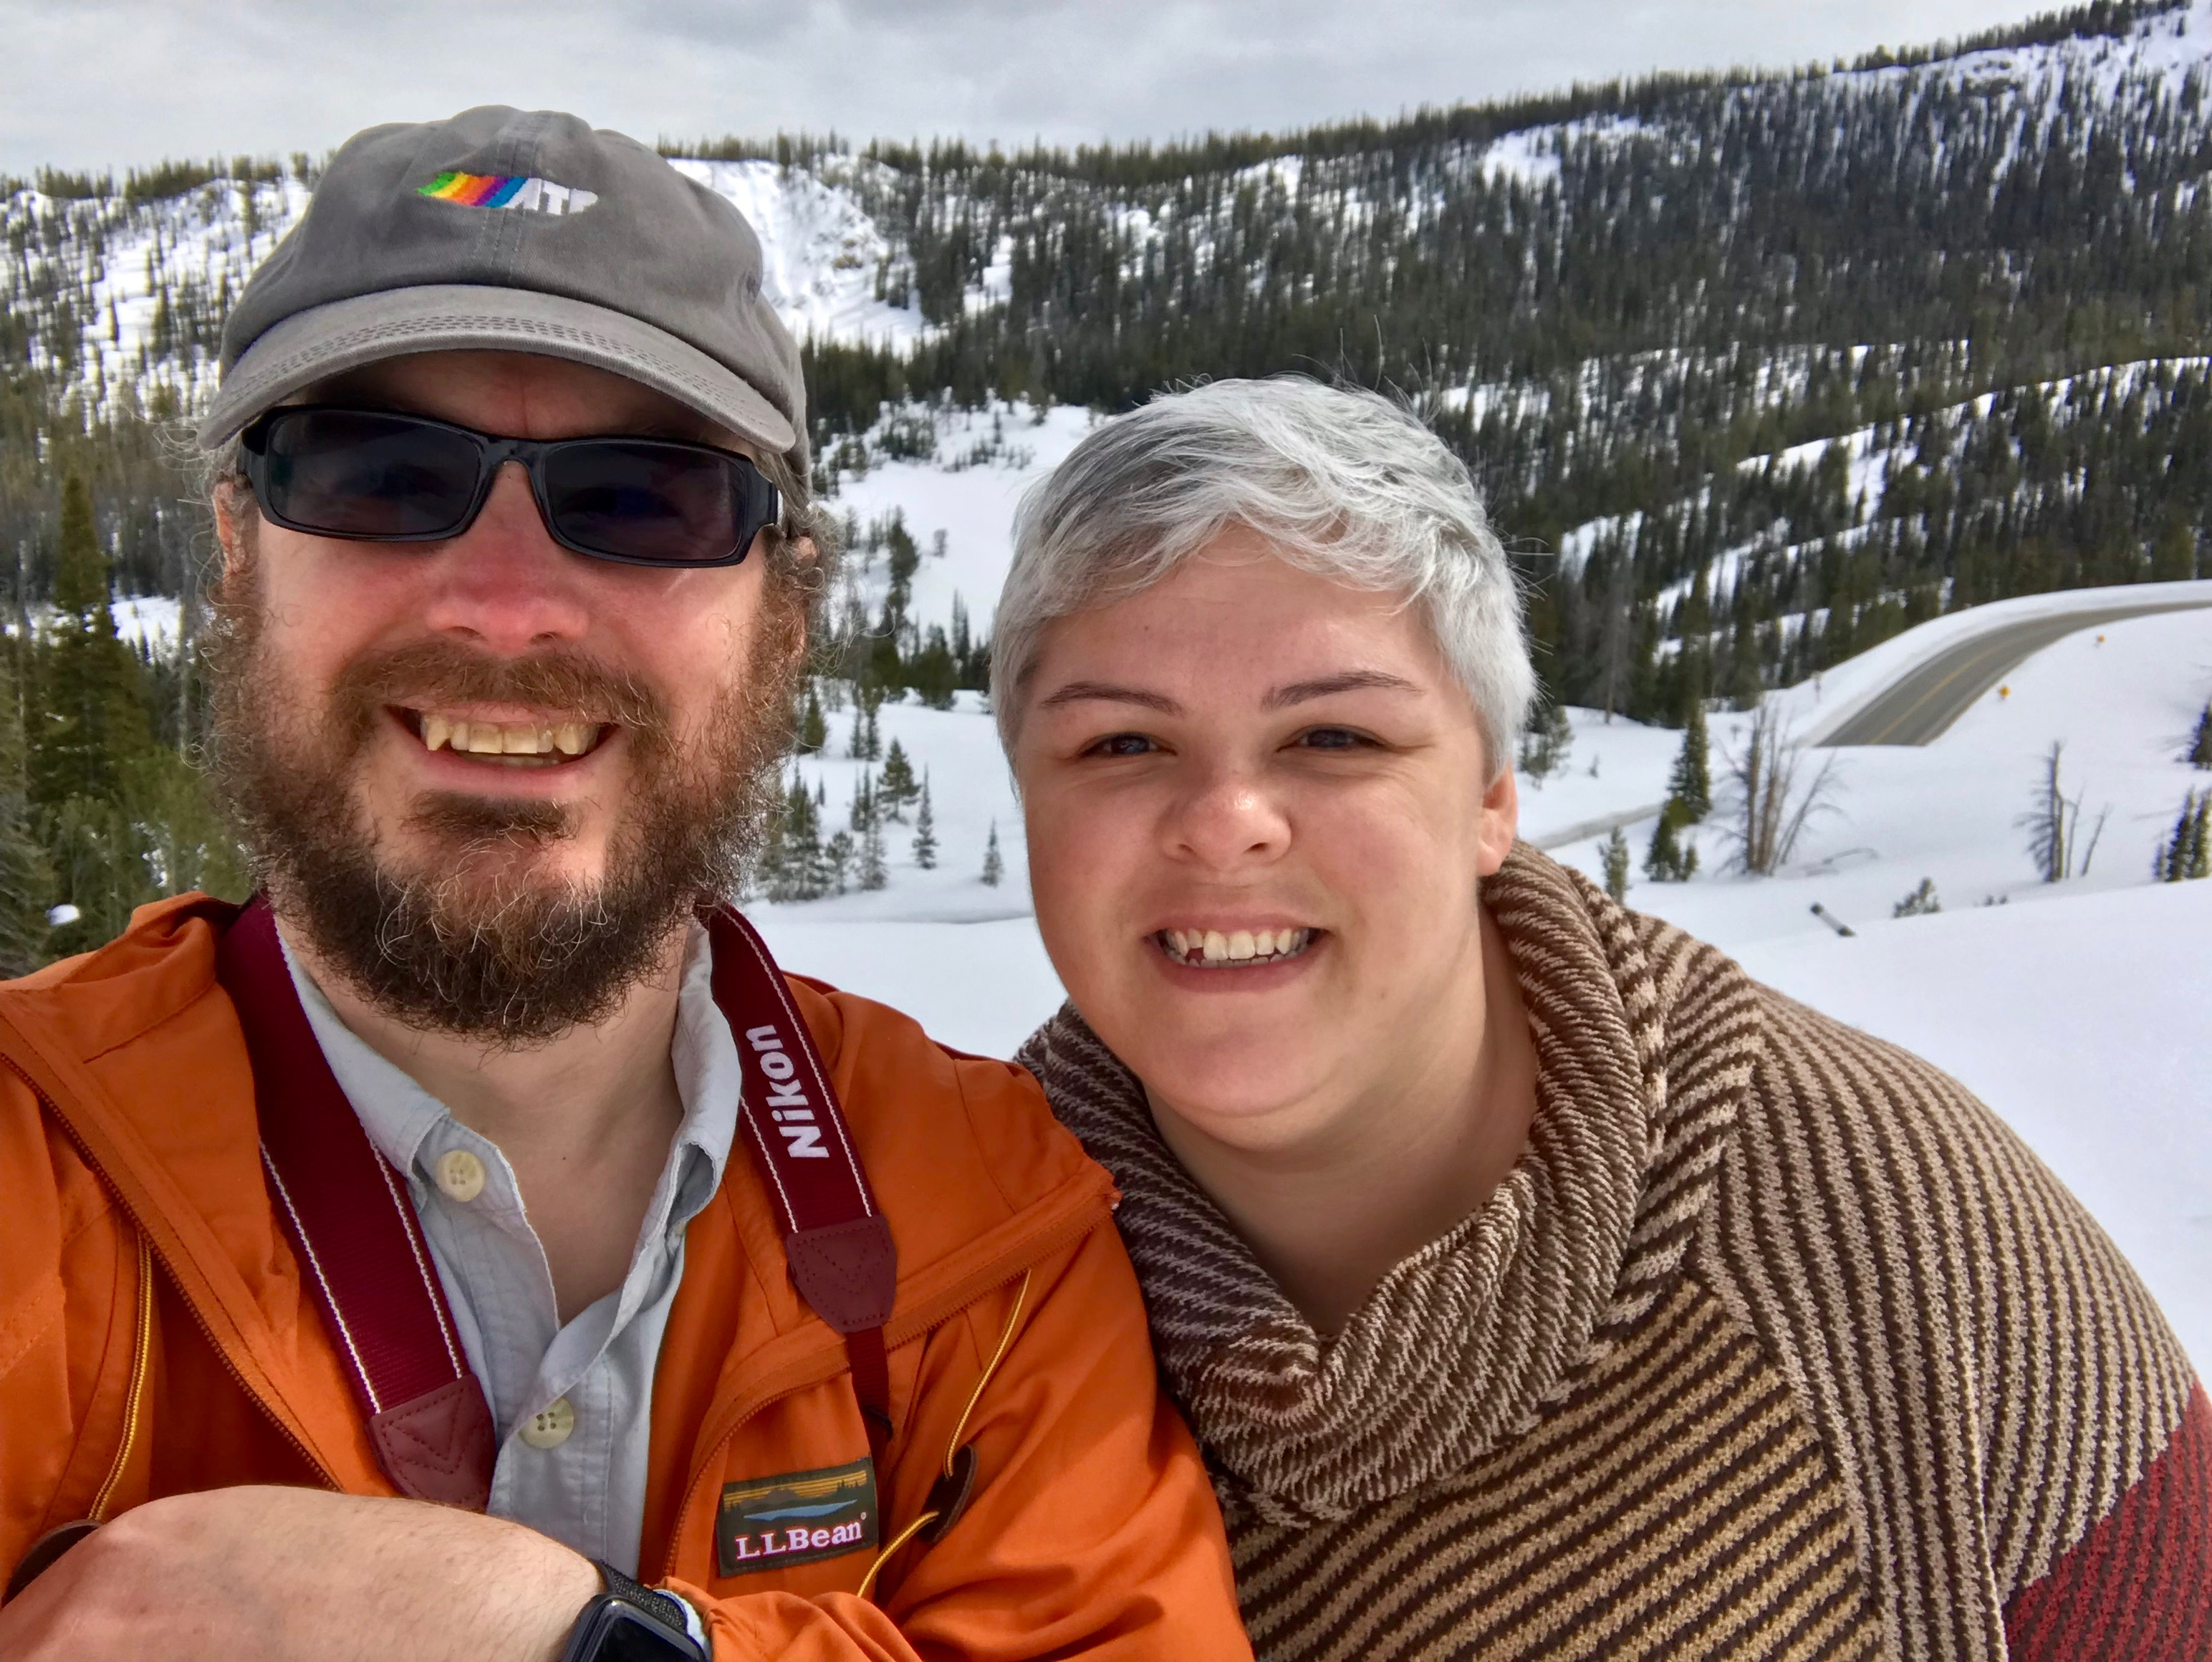 /images/2019/09/dachary and kay in snowy idaho.jpeg